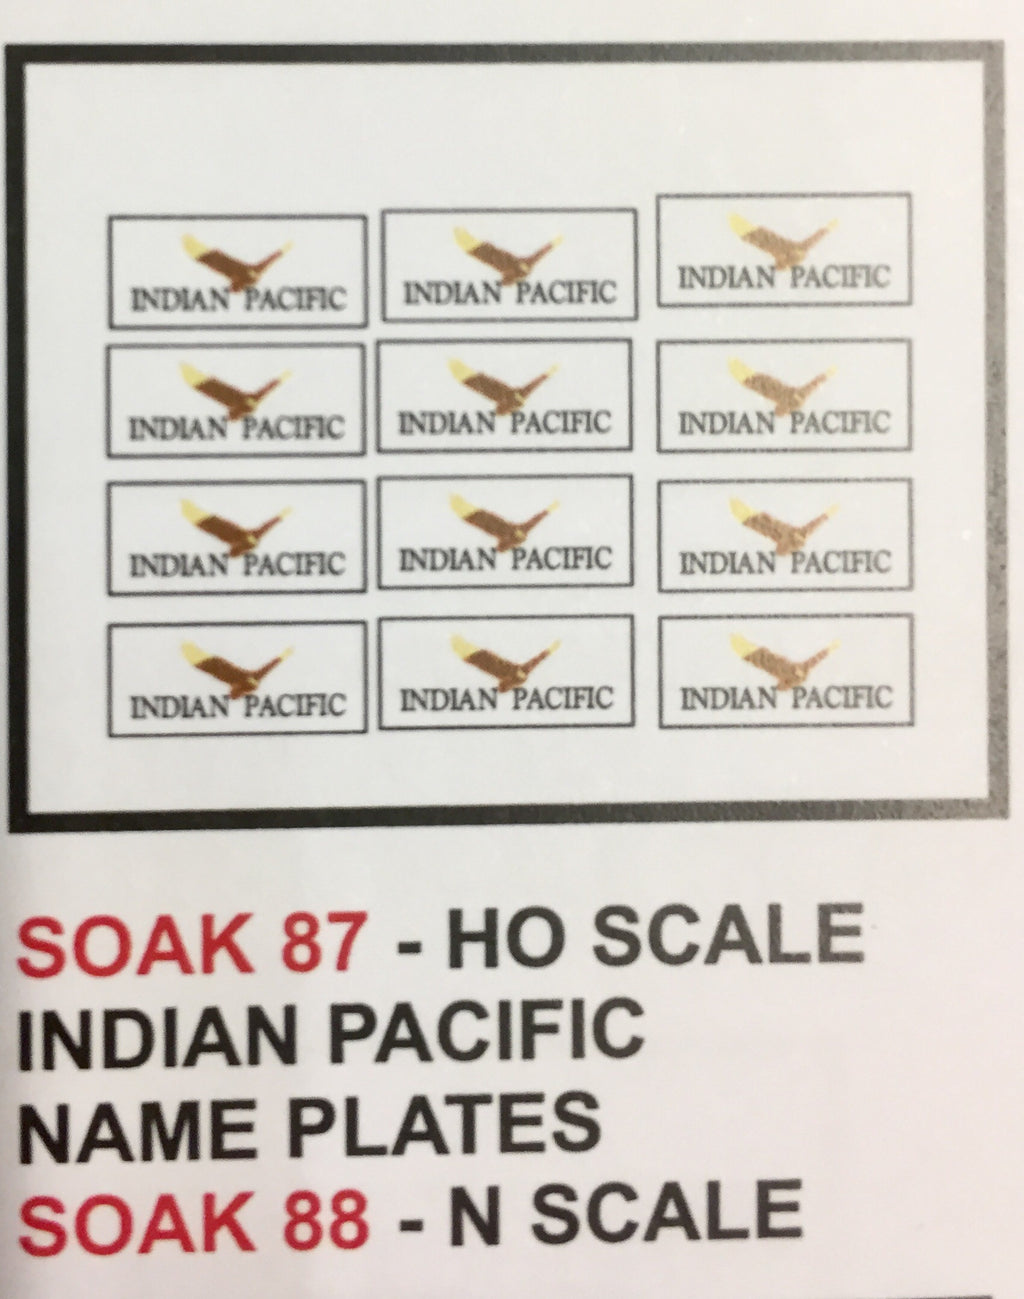 SK 88 N scale DECAL for INDIAN PACIFIC coach's name LOGOS 10 per pack N scale